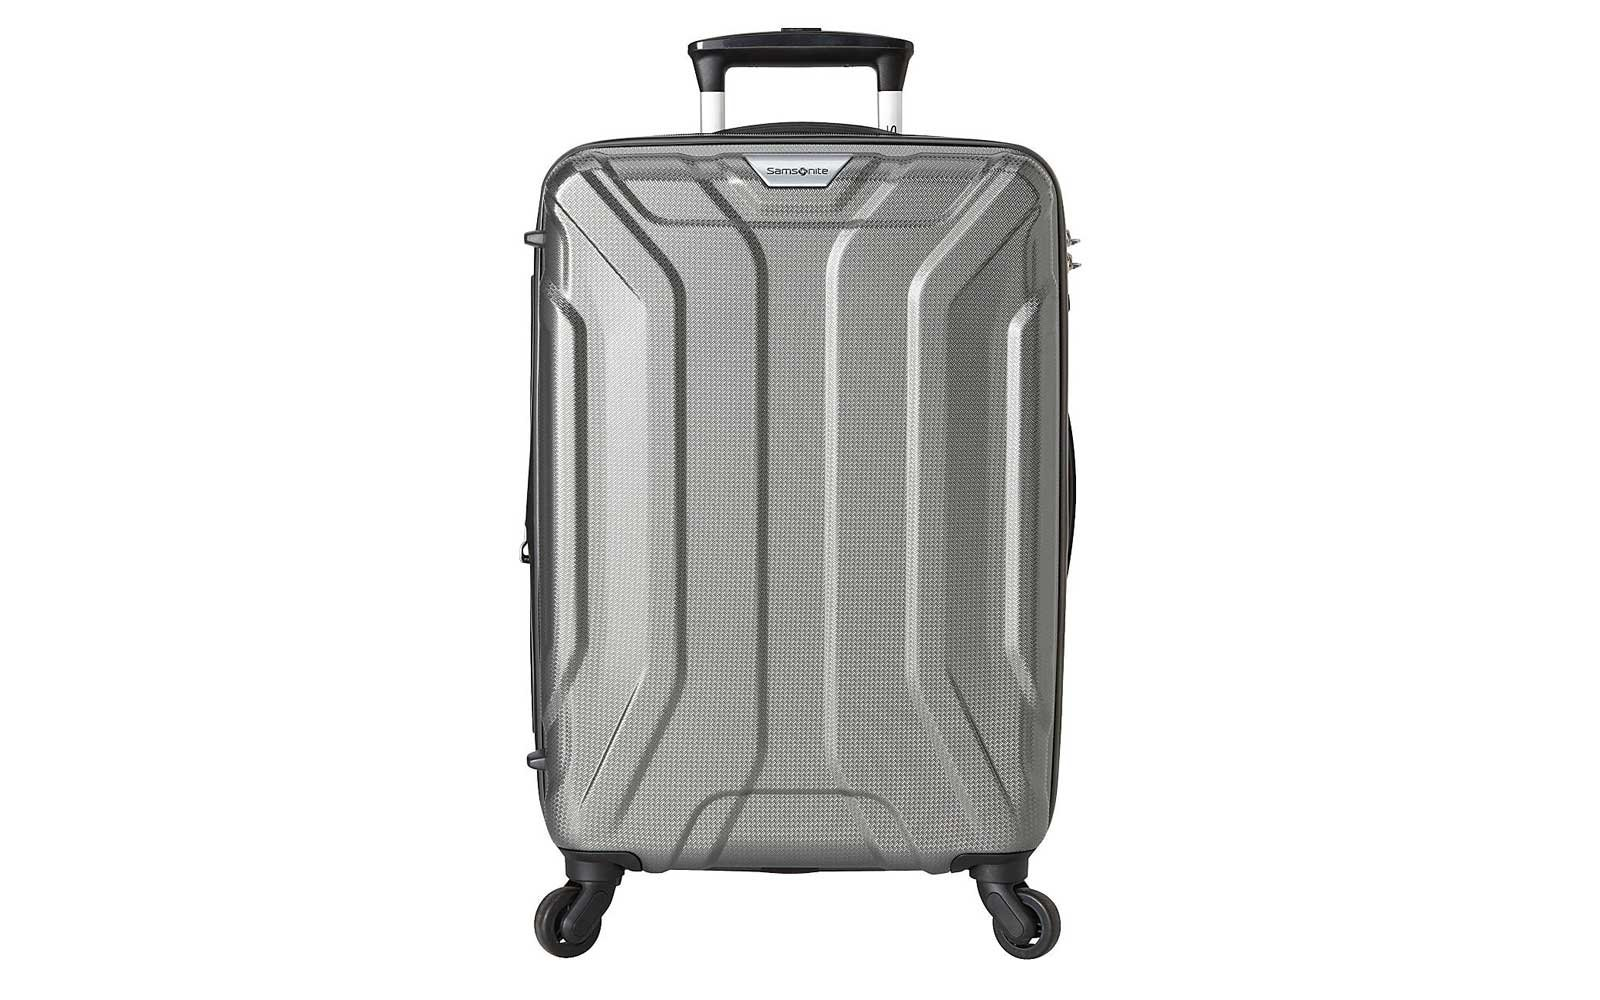 Silver Samsonite Hardside Carry-on Suitcase